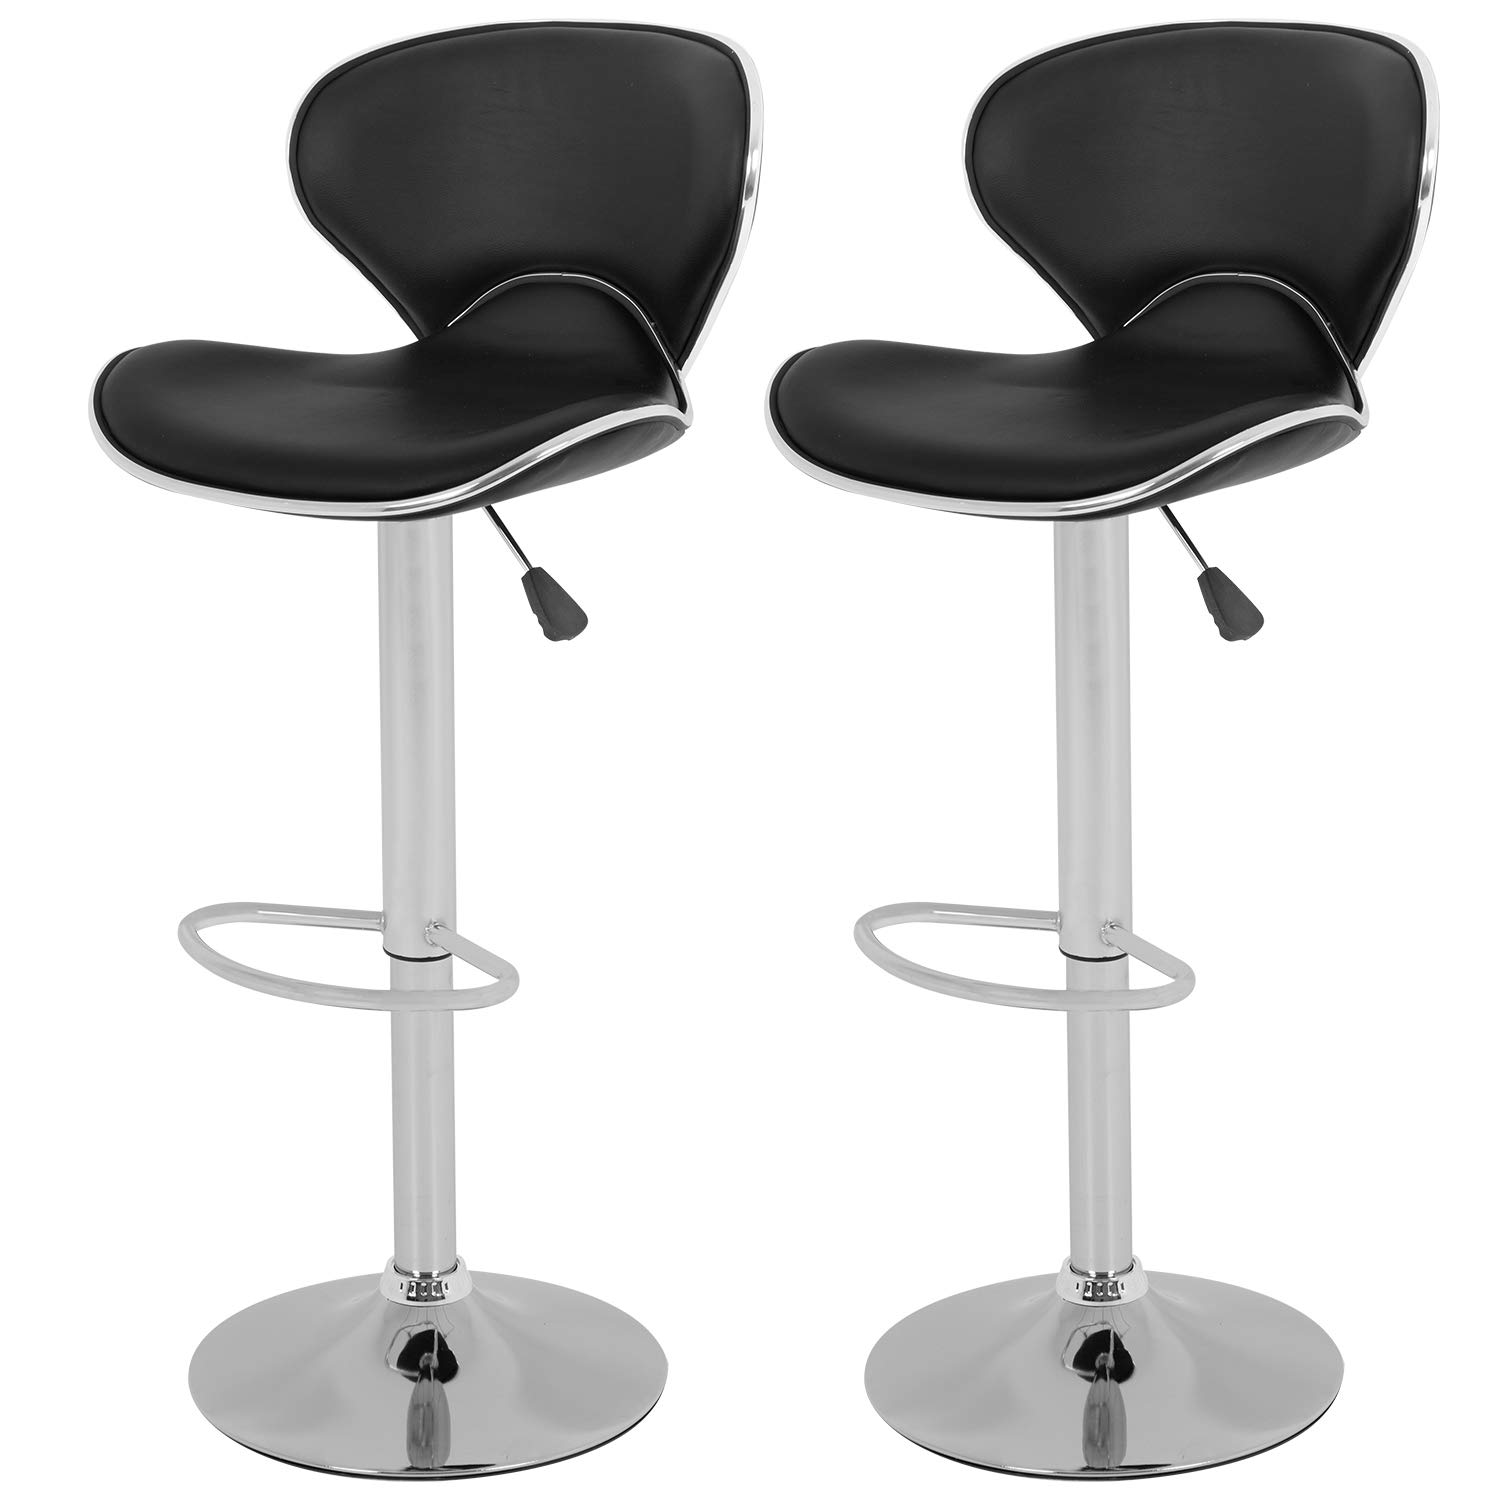 Vnewone Set of 2 Swivel Barstools Height Adjusta with Back Dining Kitchen Room Counter PU Comfortable Bar Chairs, Black